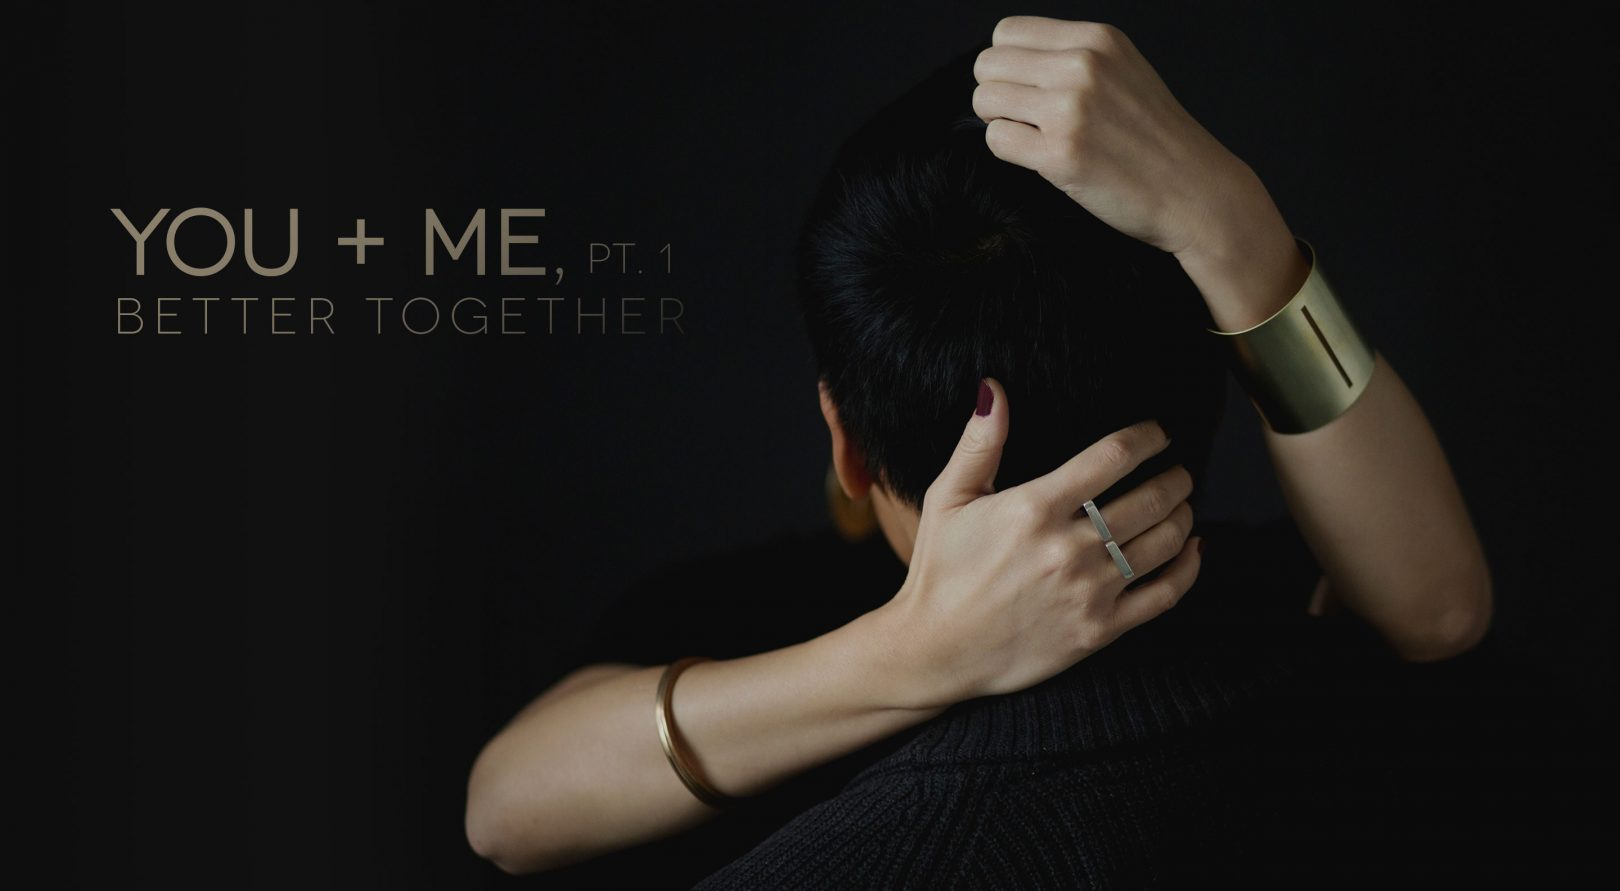 you+me collection by betsy & iya